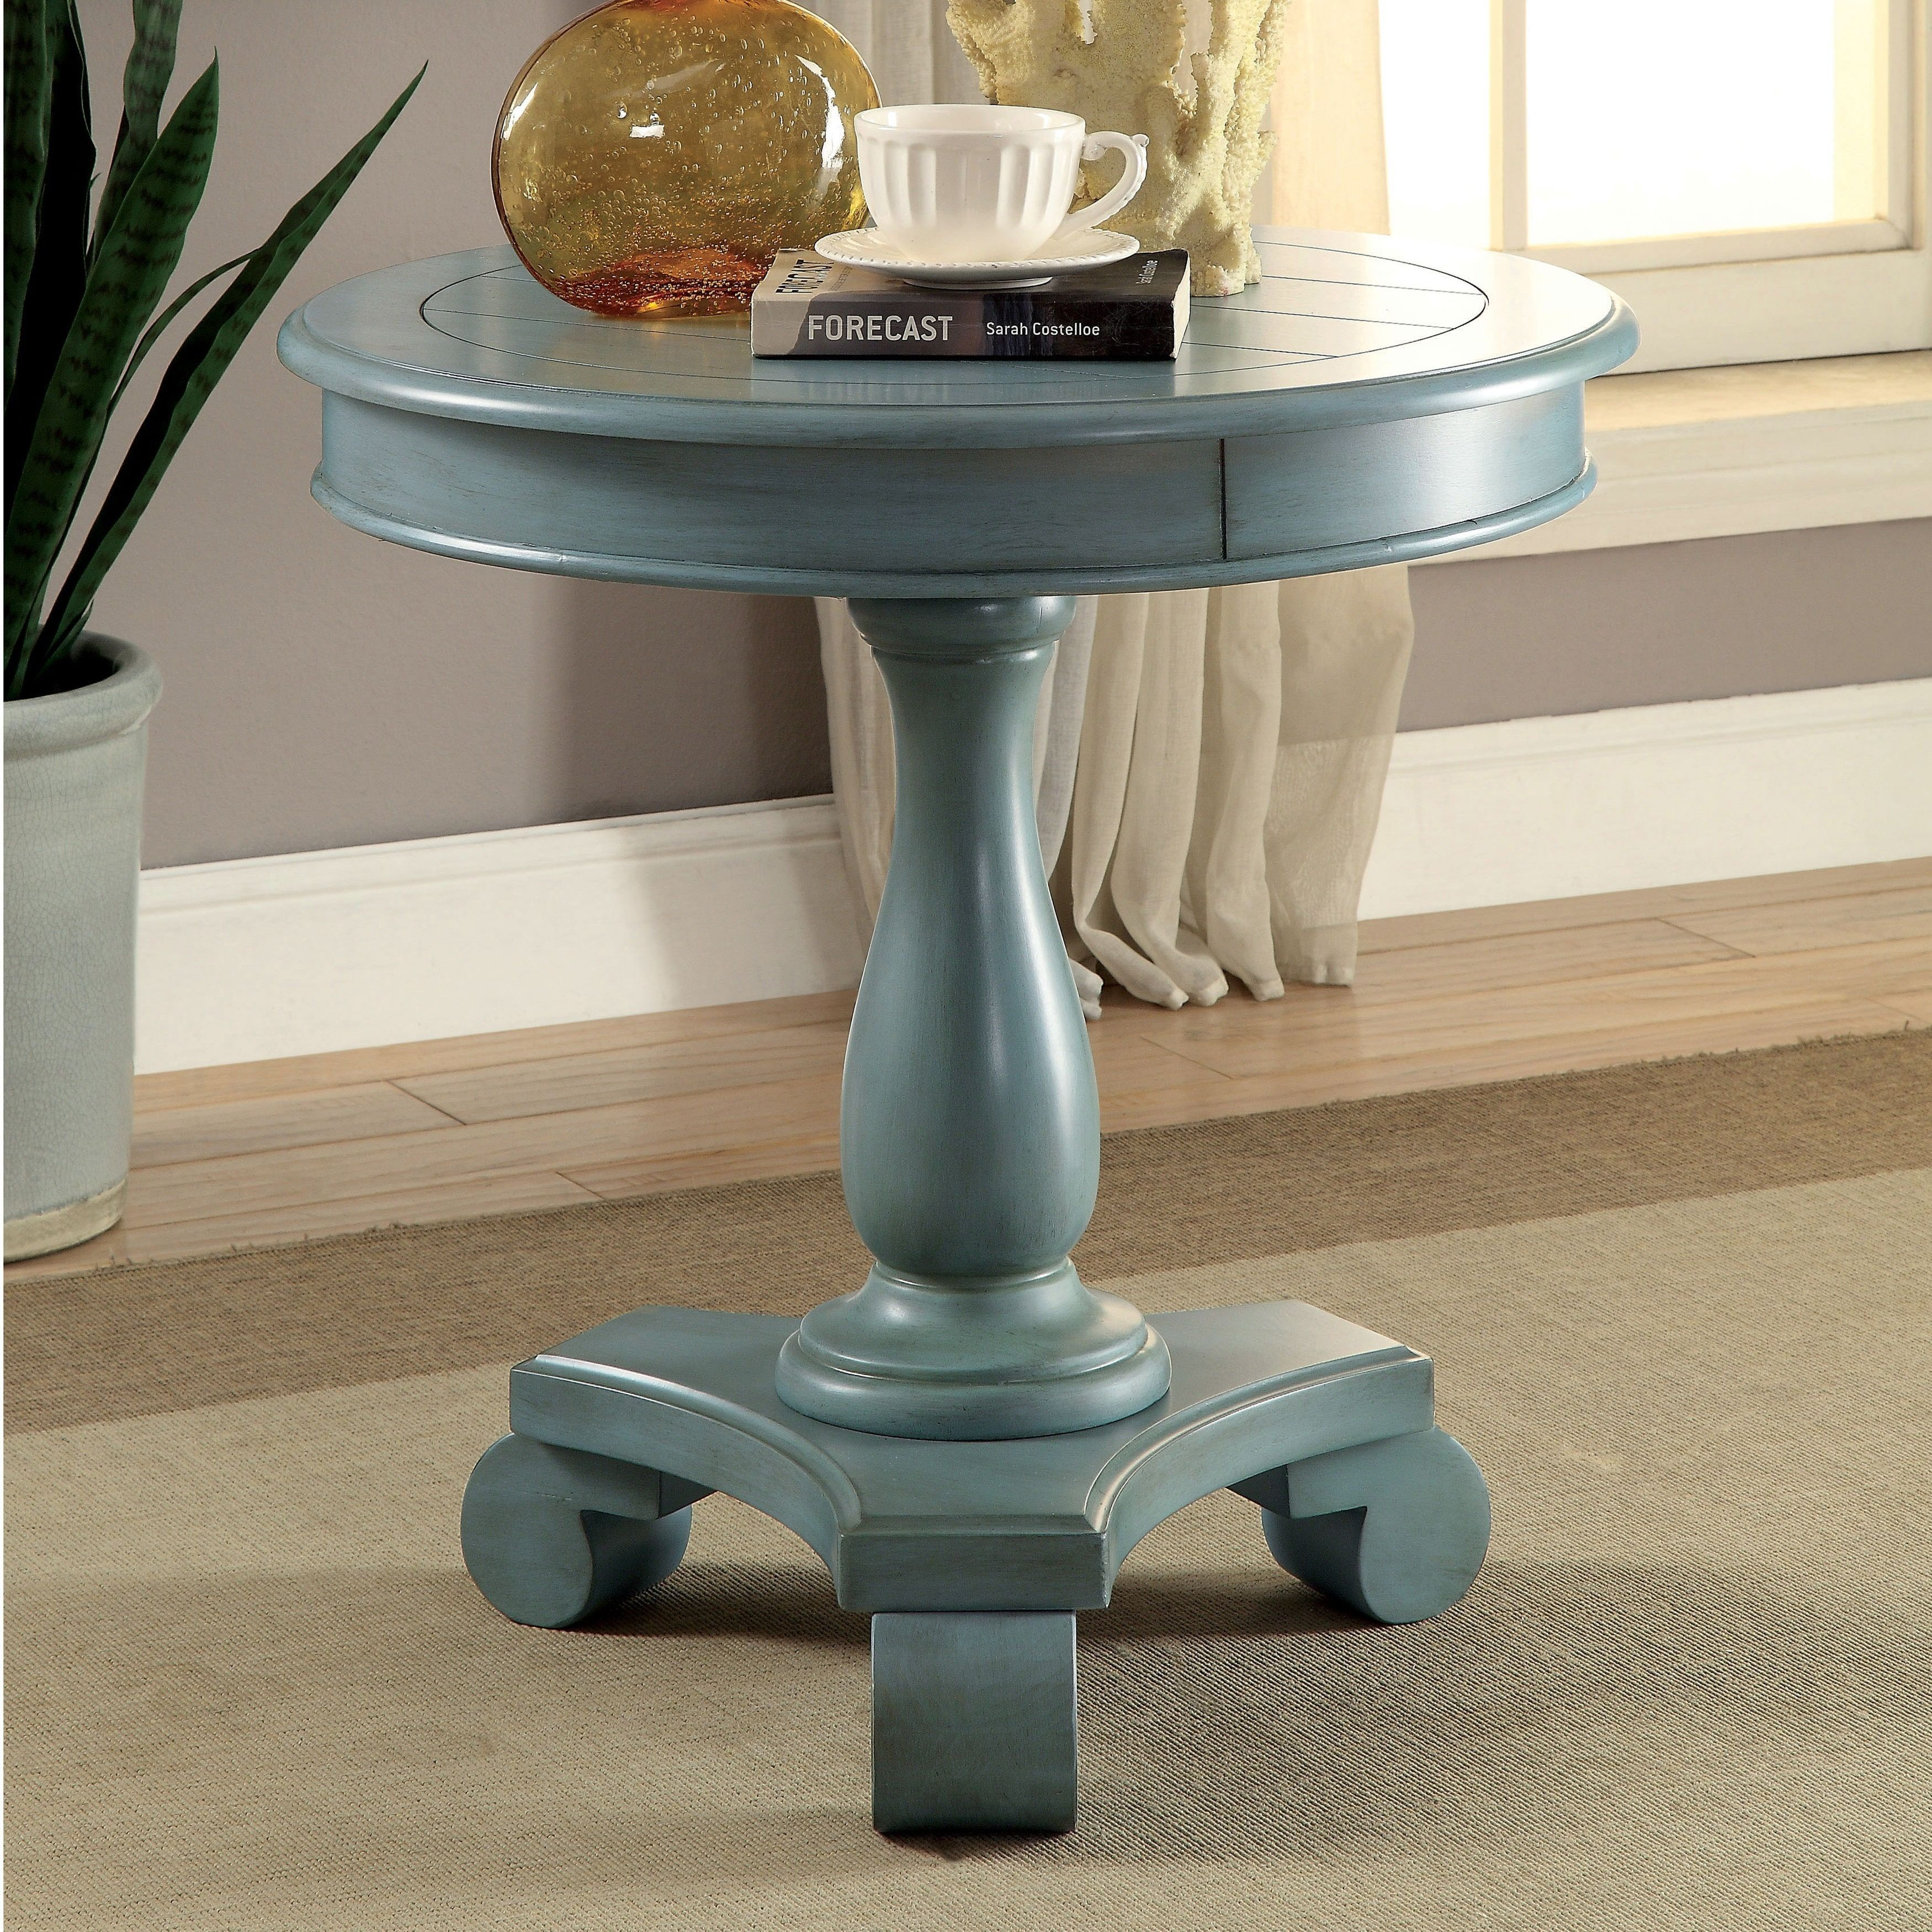 furniture america madelle traditional pedestal base round side antique accent table teal blue with folding sides chairside attached lamp west elm patio montreal hampton bay chairs